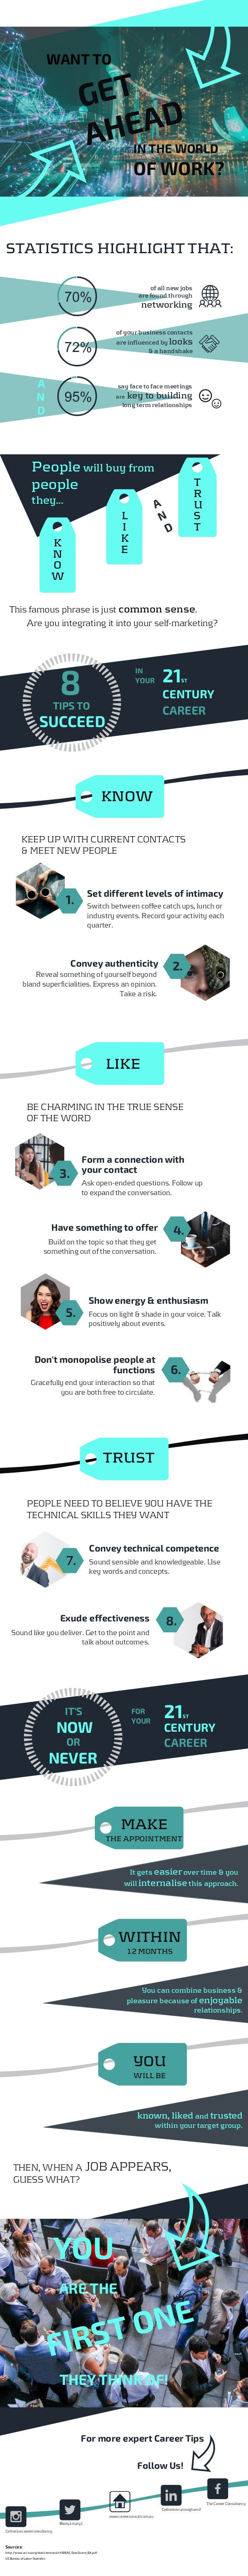 People will buy from people they... 8TIPS TO 21ST KNOW CENTURY KEEP UP WITH CURRENT CONTACTS & MEET NEW PEOPLE LIKE IN YOU...